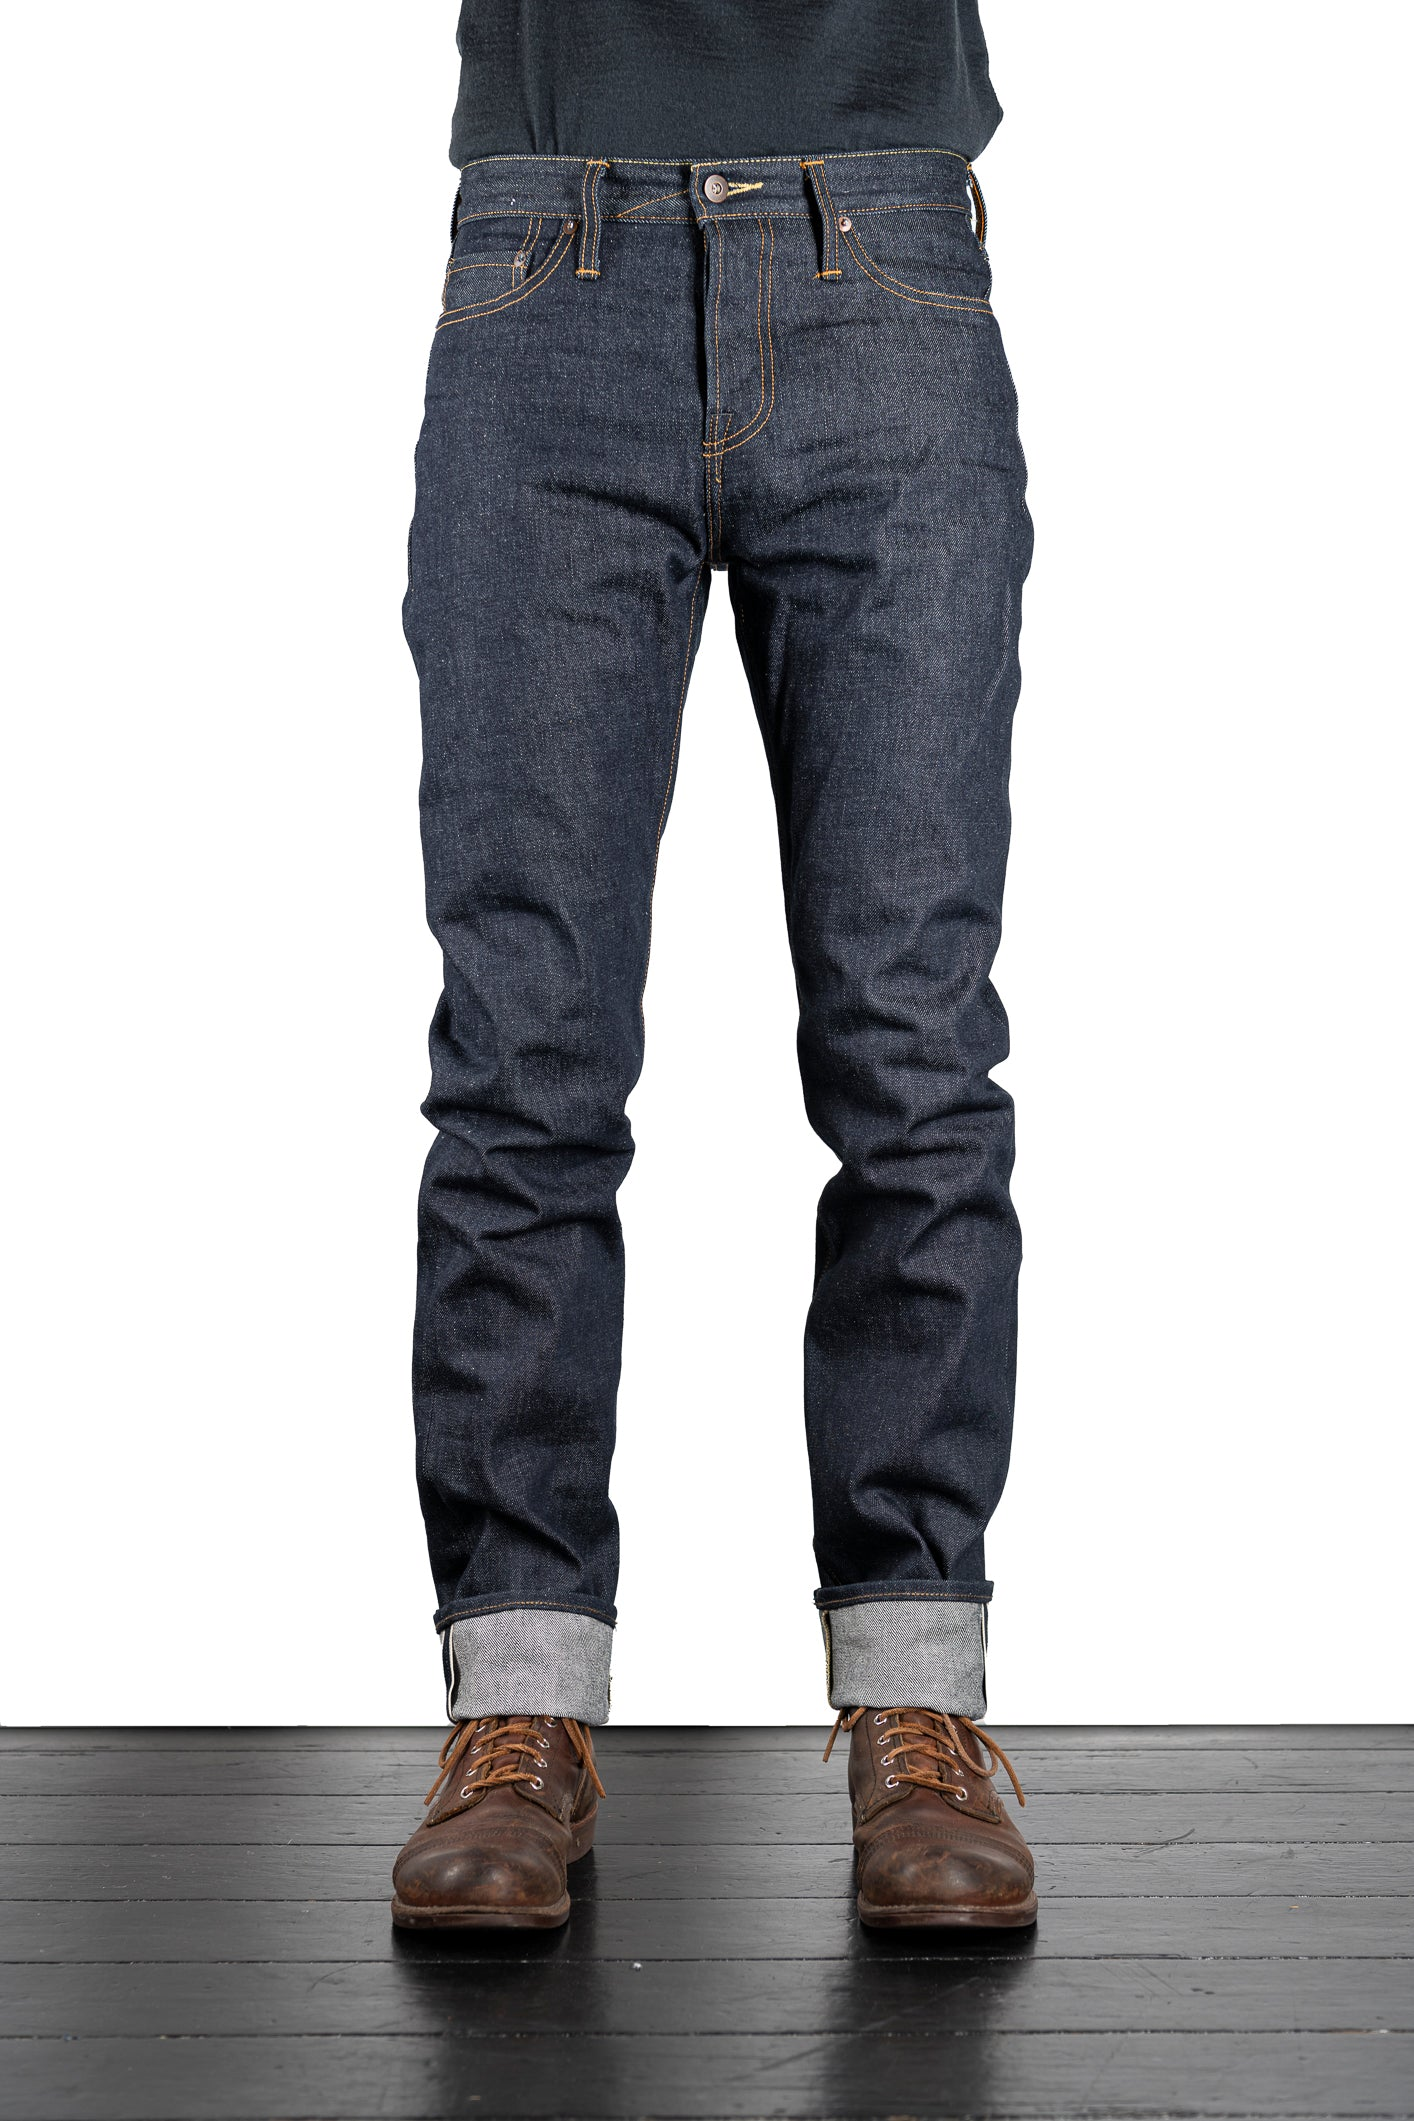 Tellason - Jeans, Elgin, 16.5 oz denim